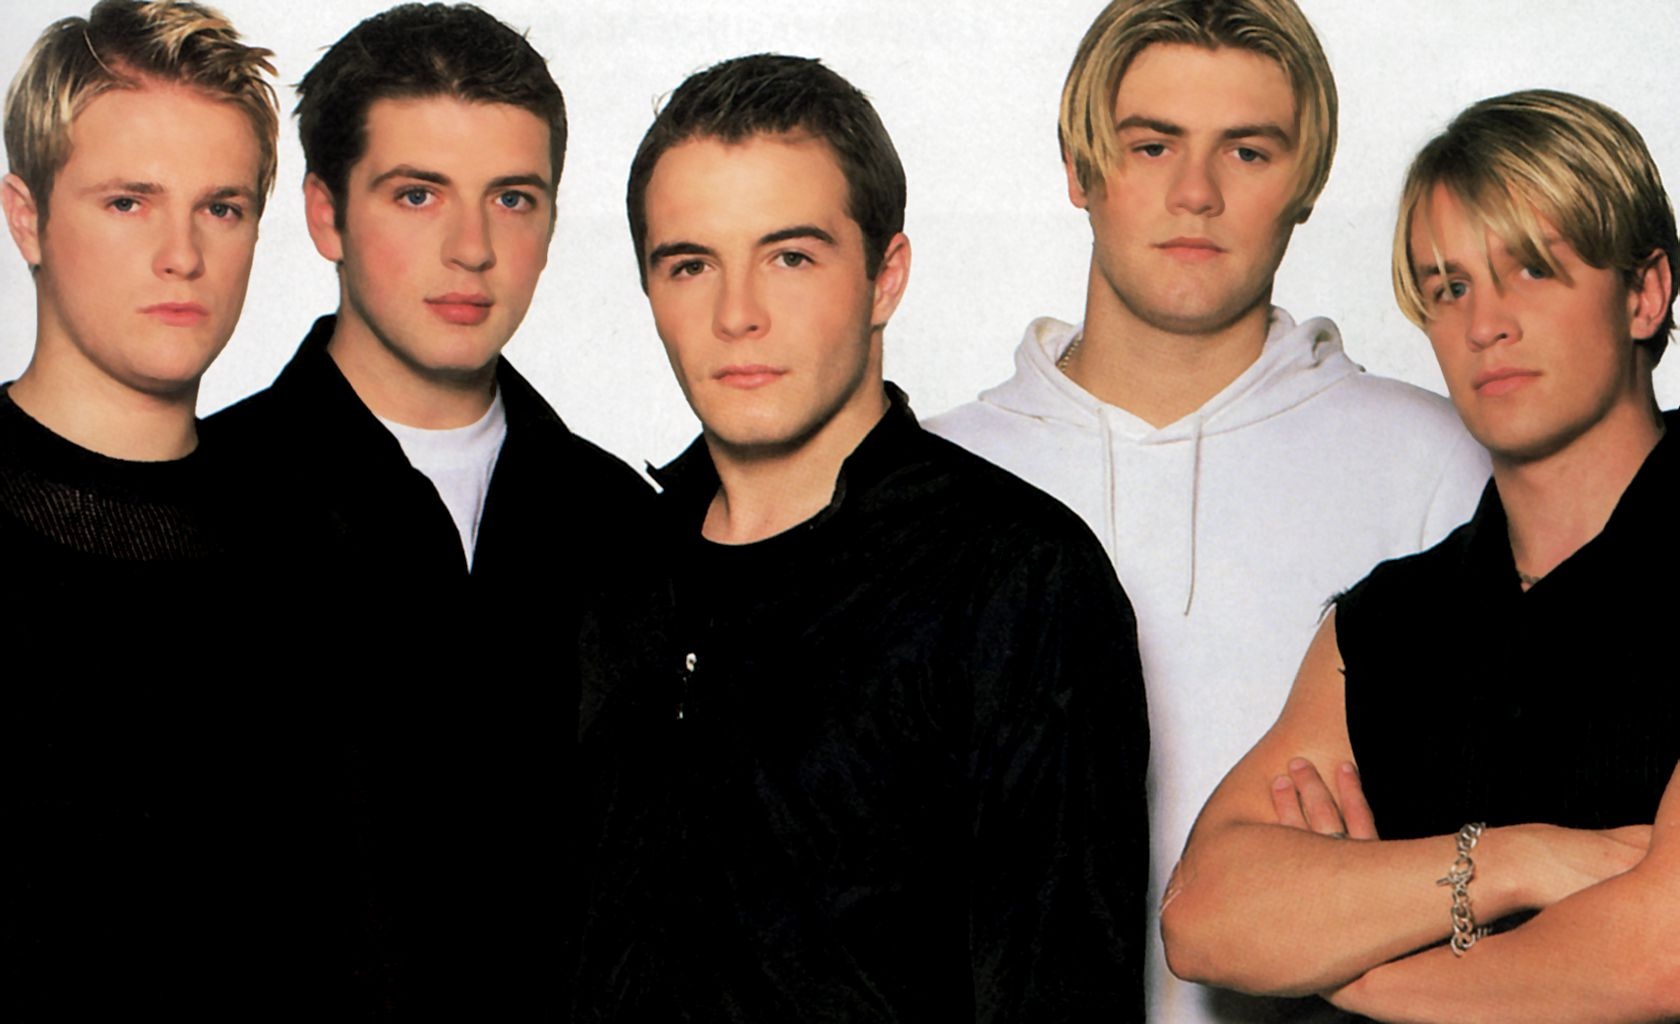 westlife-wallpaper-1680-x-1024-markfeehily-net